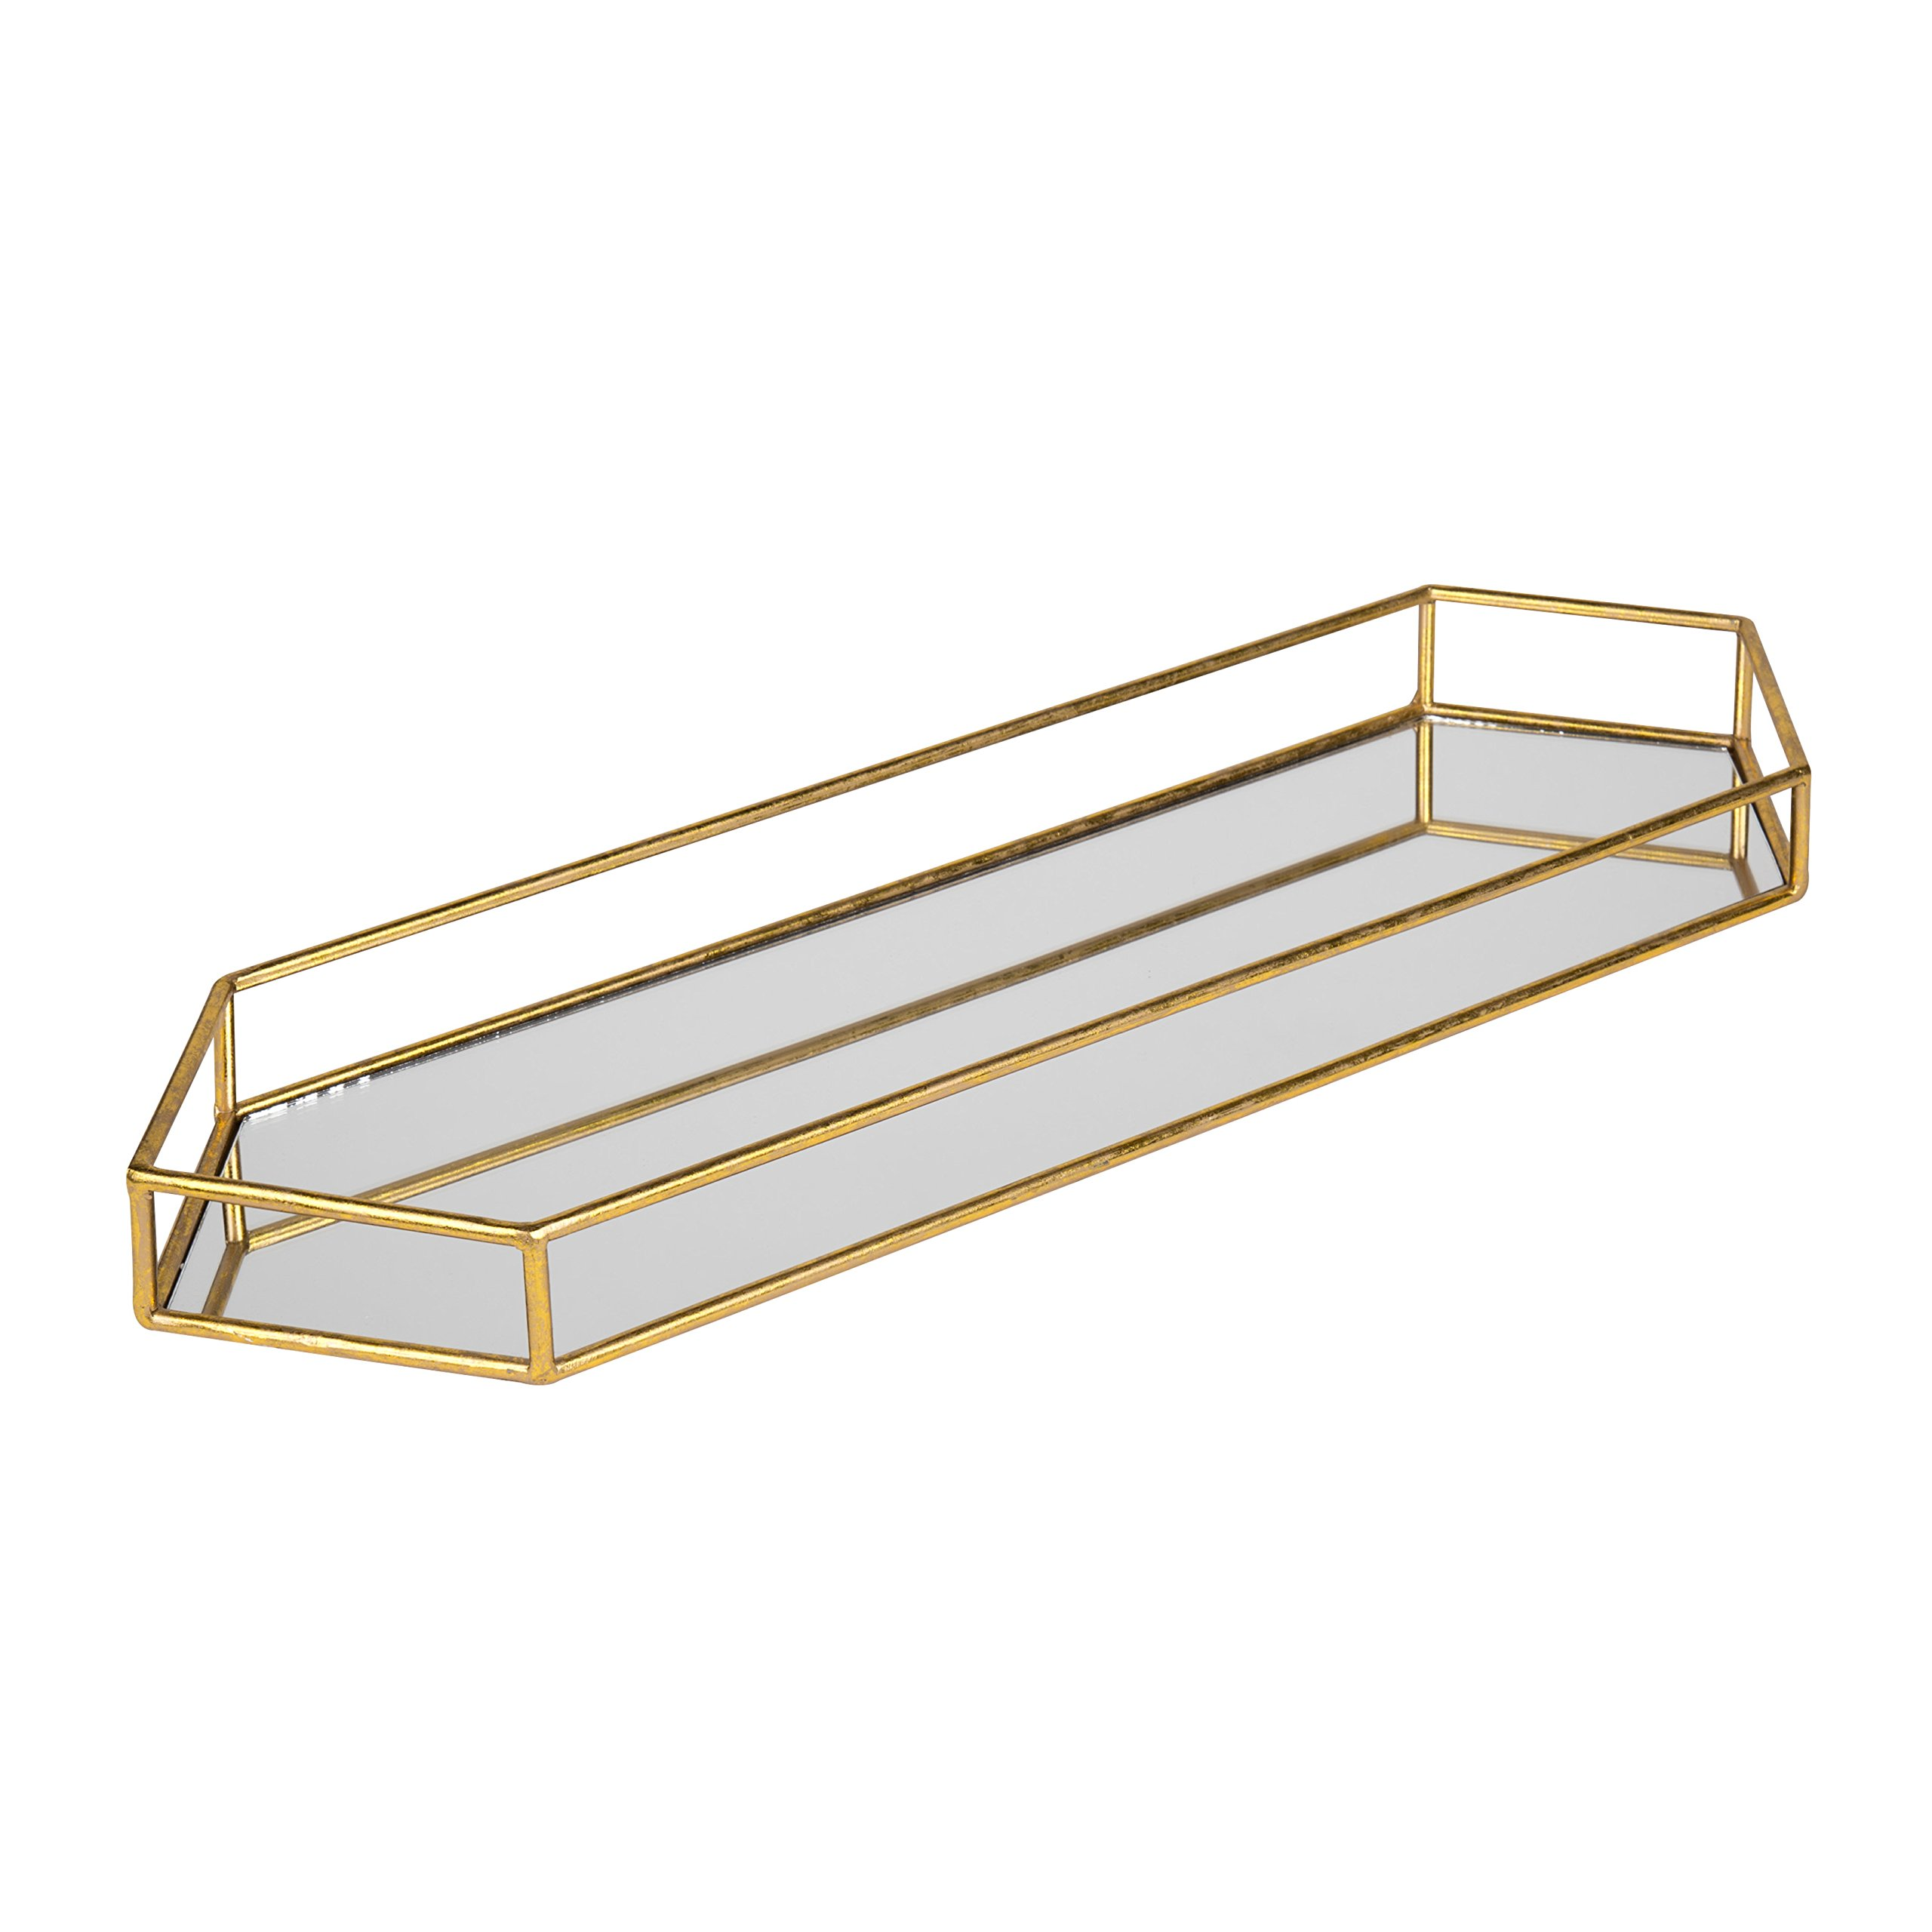 Kate and Laurel Felicia 26x8 Narrow Metal Mirrored Tray, Gold by Kate and Laurel